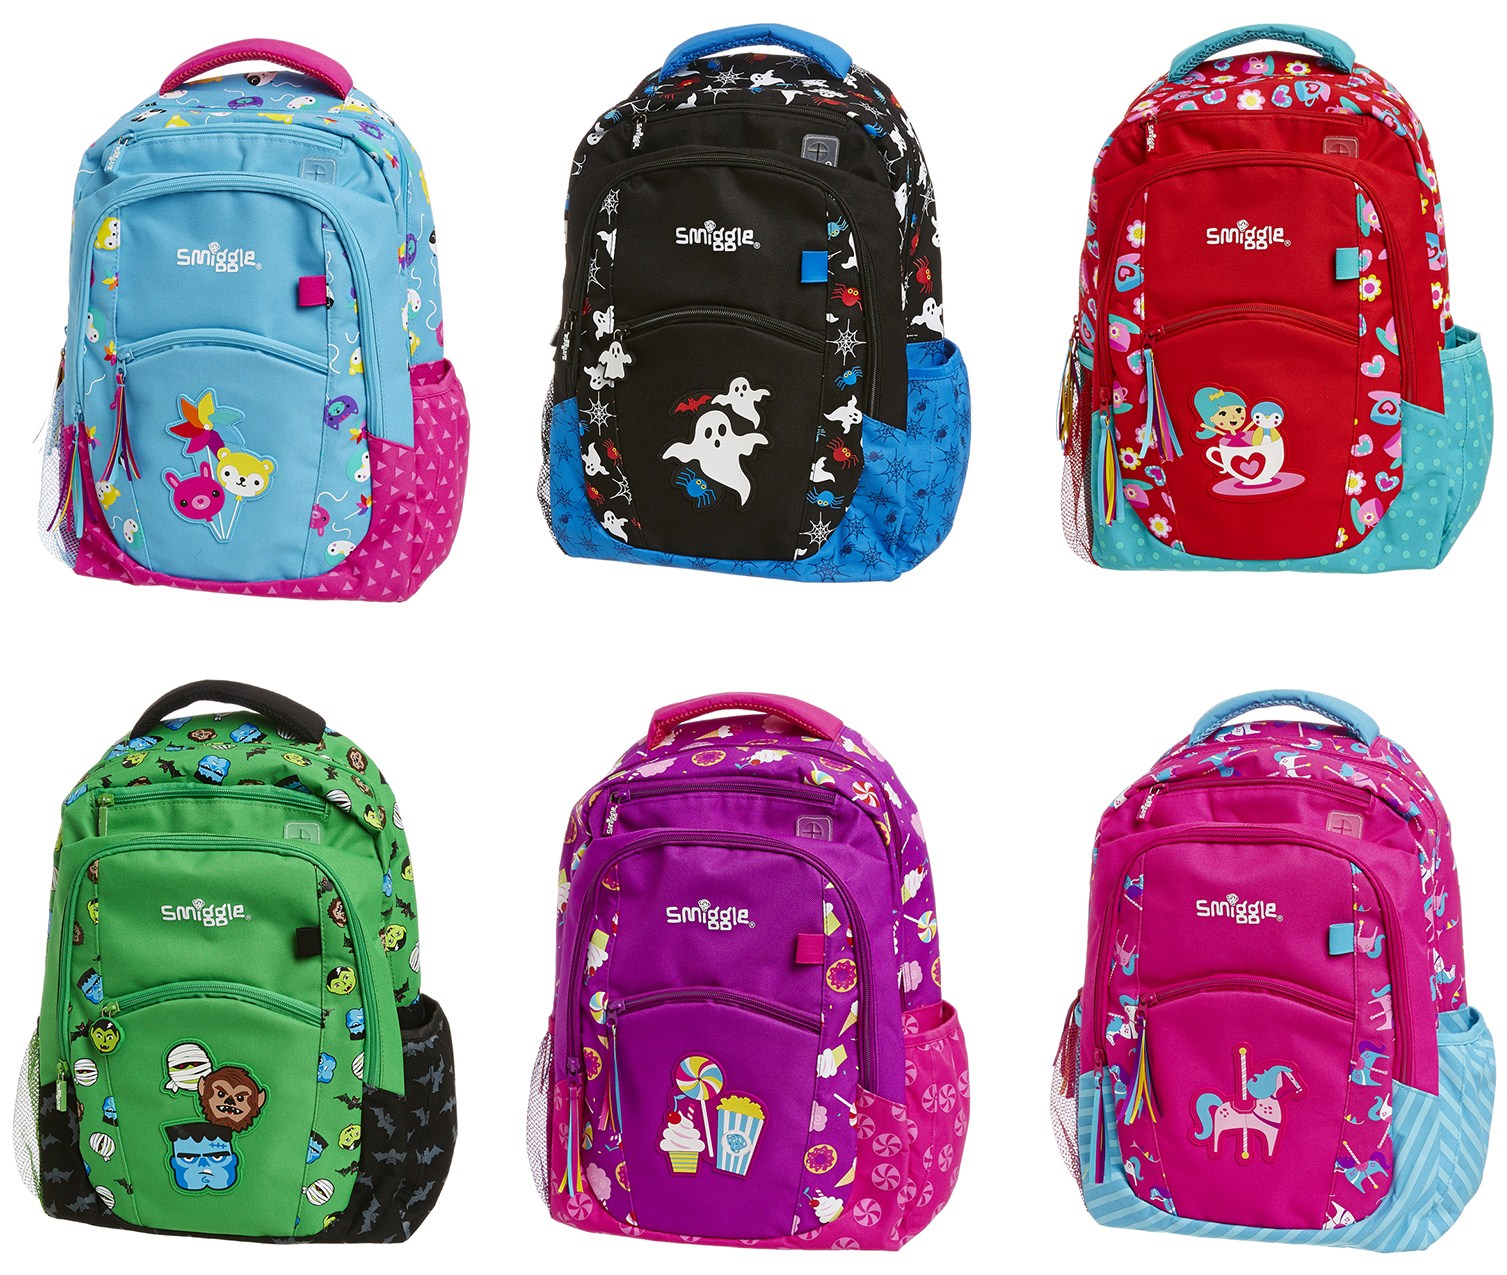 Smiggle bags for school - Alongside The Backpack They Have Included A Carnival Stencil Book 8 50 With Lots Of Space For Your Children To Have Fun And Be Creative And A Carnival